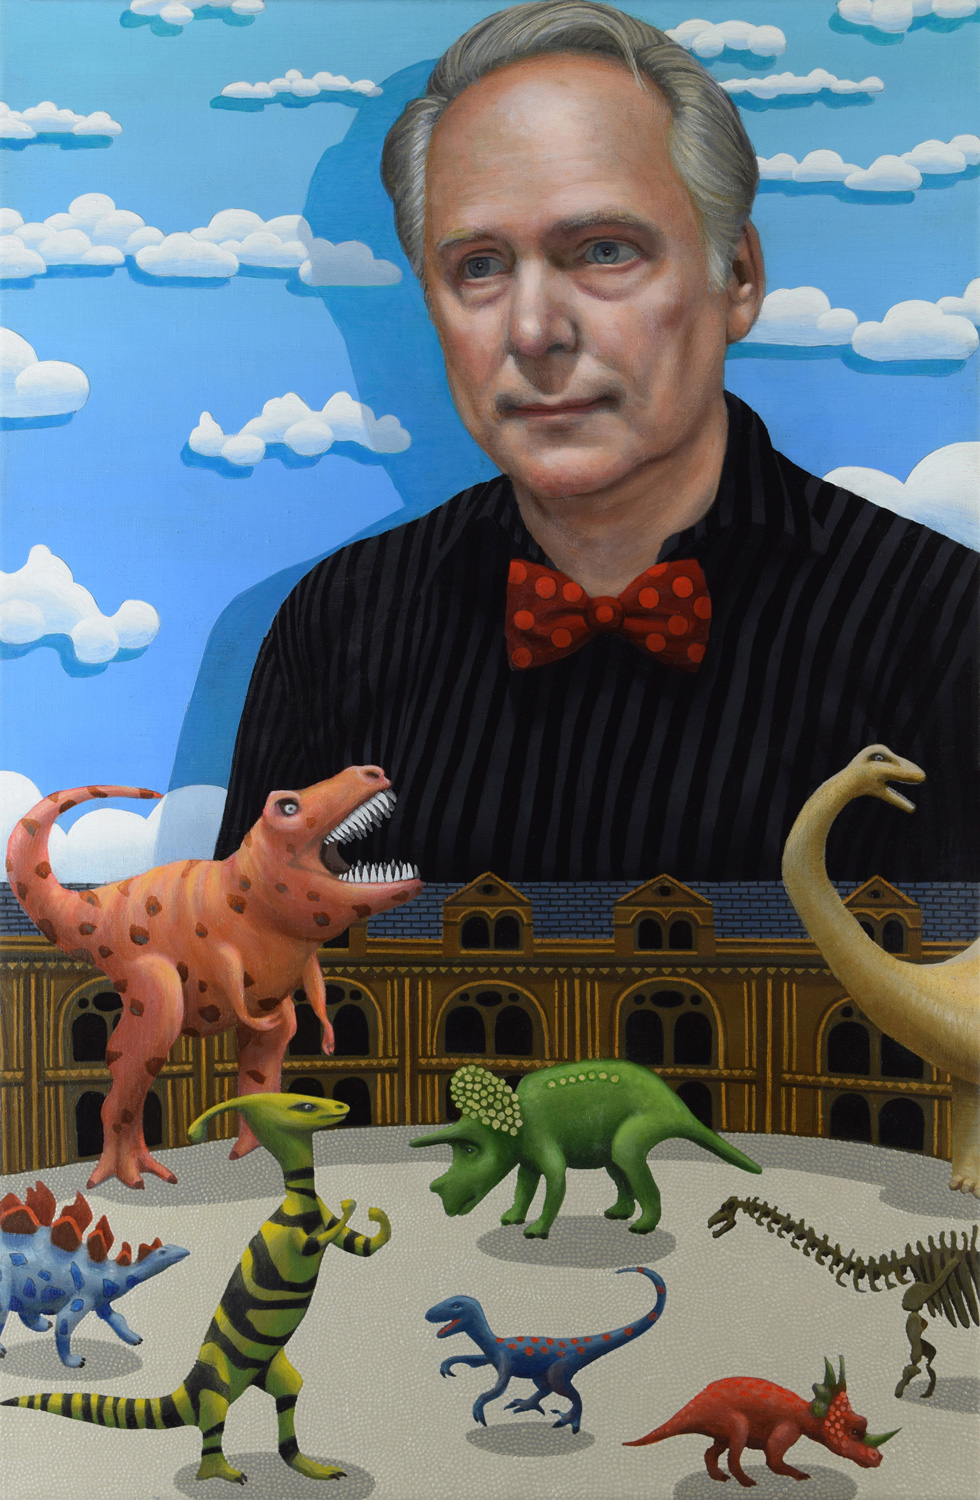 Animator Nick Park and the Dinosaur Gallery